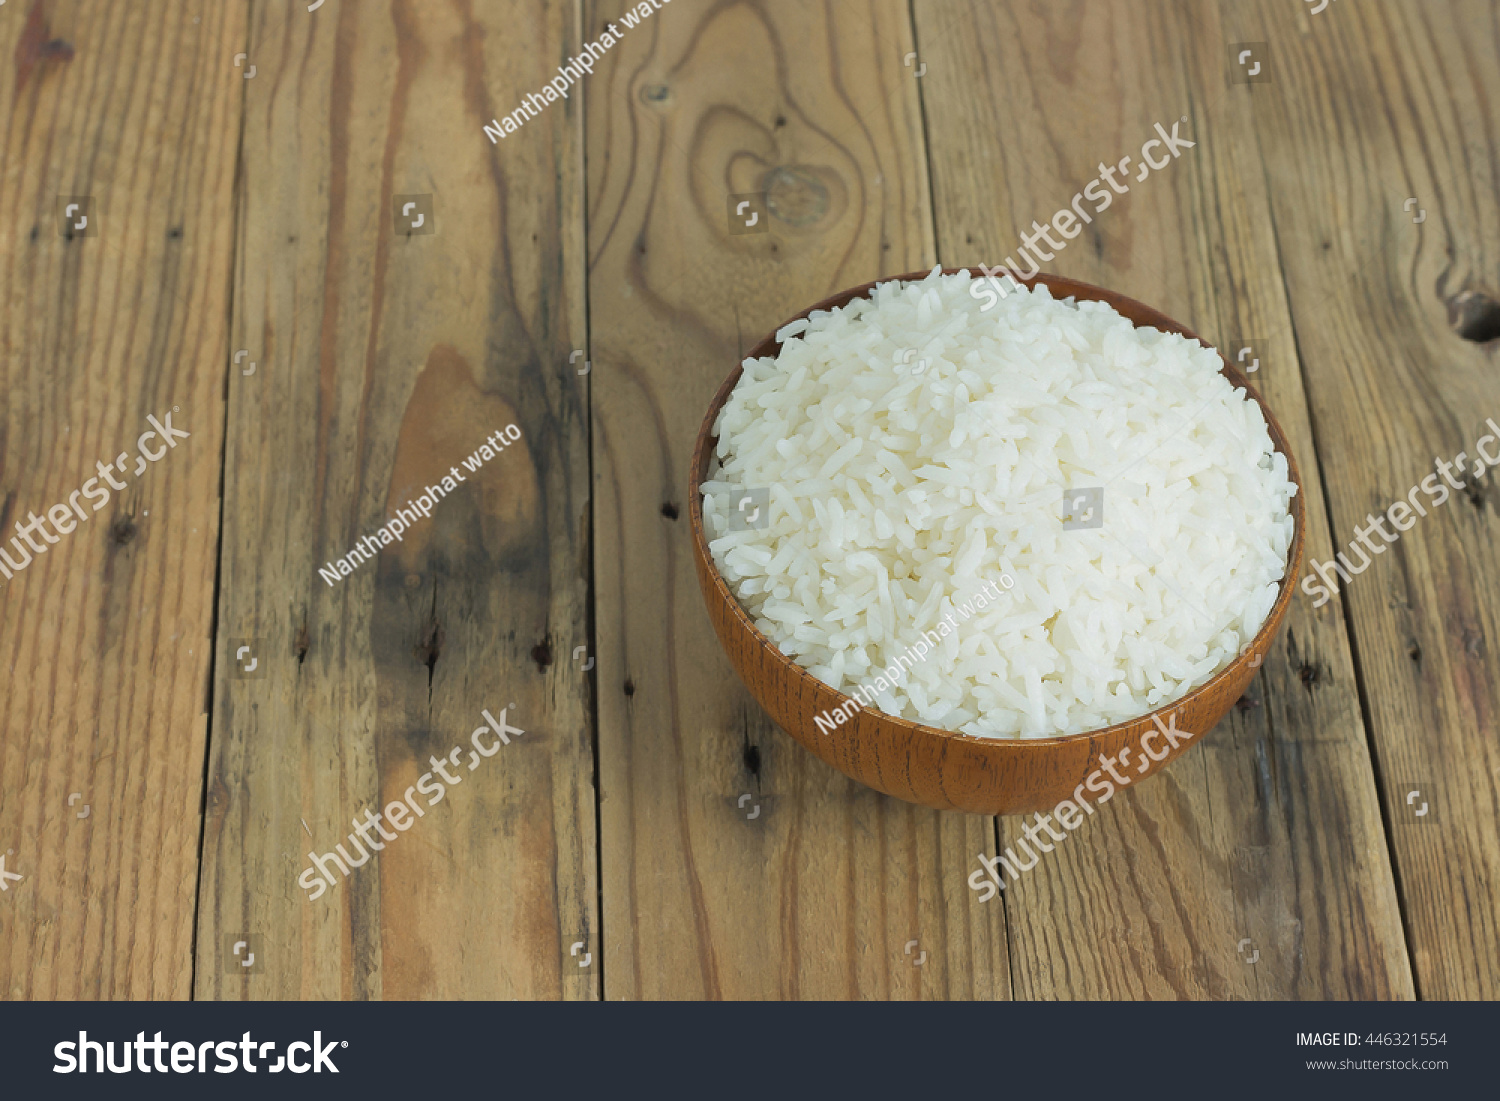 Cooked rice in bowl on old wooden table. with copy space for write text. #446321554